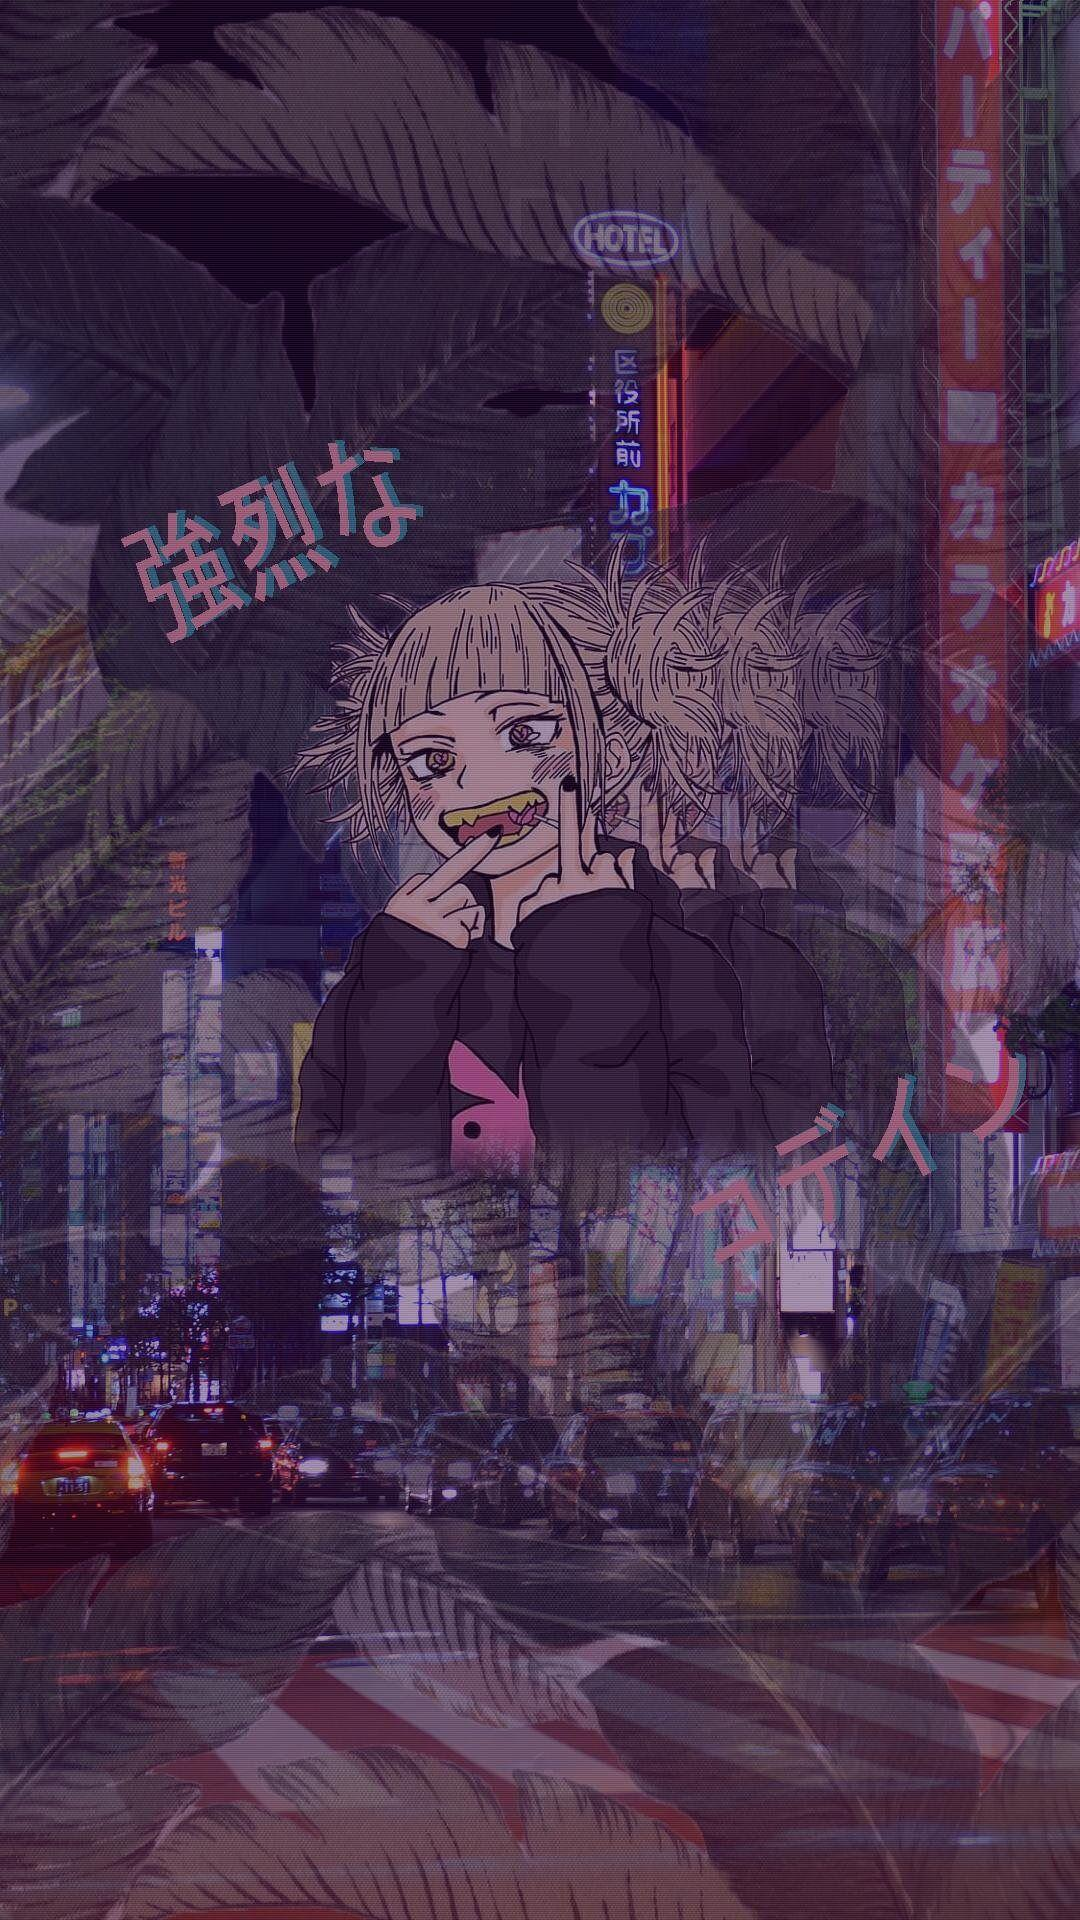 Anime Aesthetic Wallpaper Desktop Posted By Ryan Tremblay